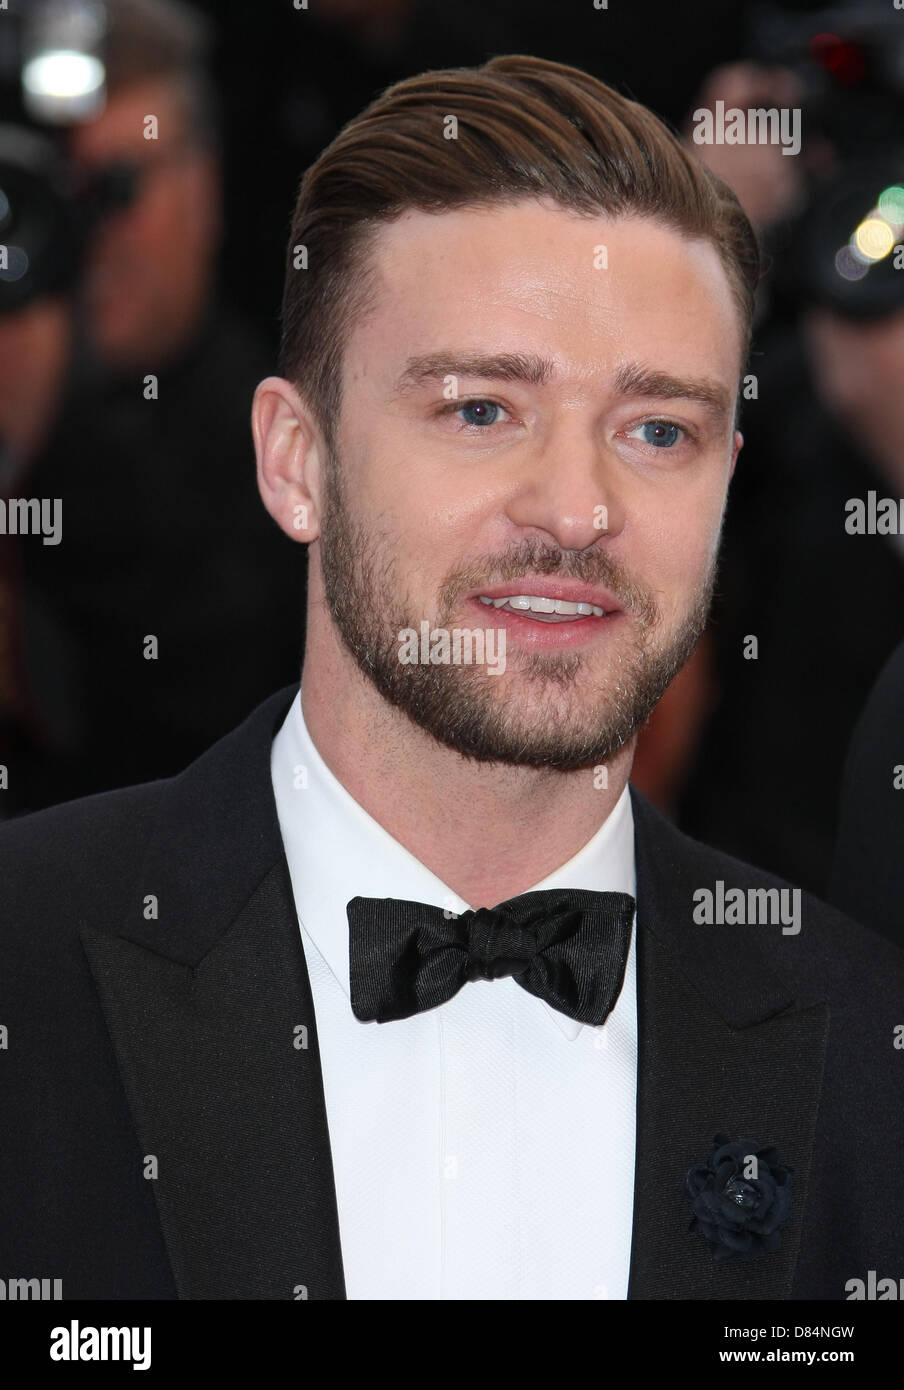 Justin timberlake 2013 stock photos justin timberlake 2013 stock justin timberlake inside llewyn davis premiere cannes film festival 2013 cannes france 19 may voltagebd Gallery